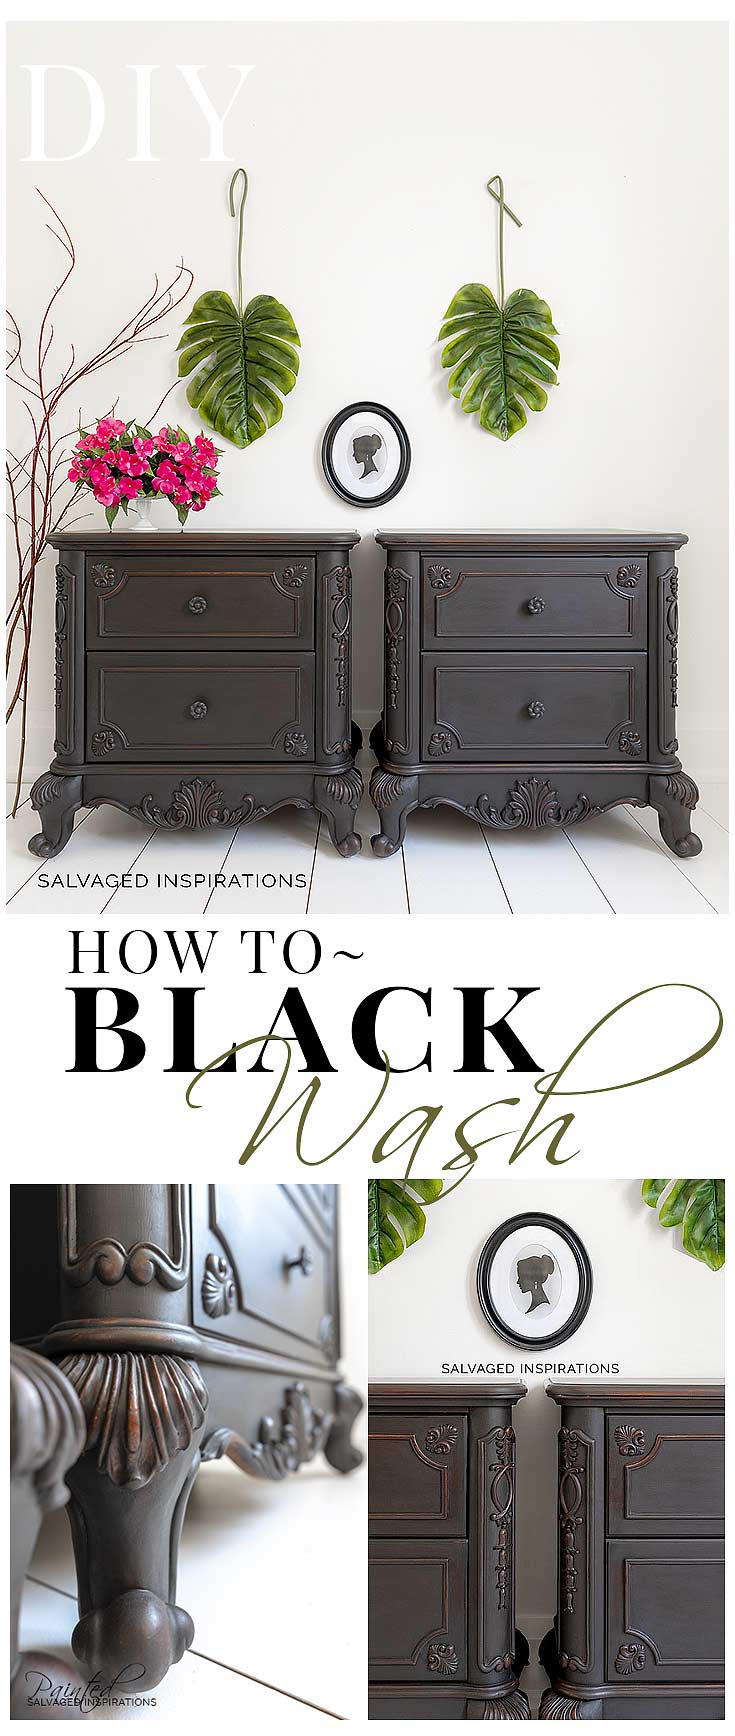 How To Black Wash Furniture